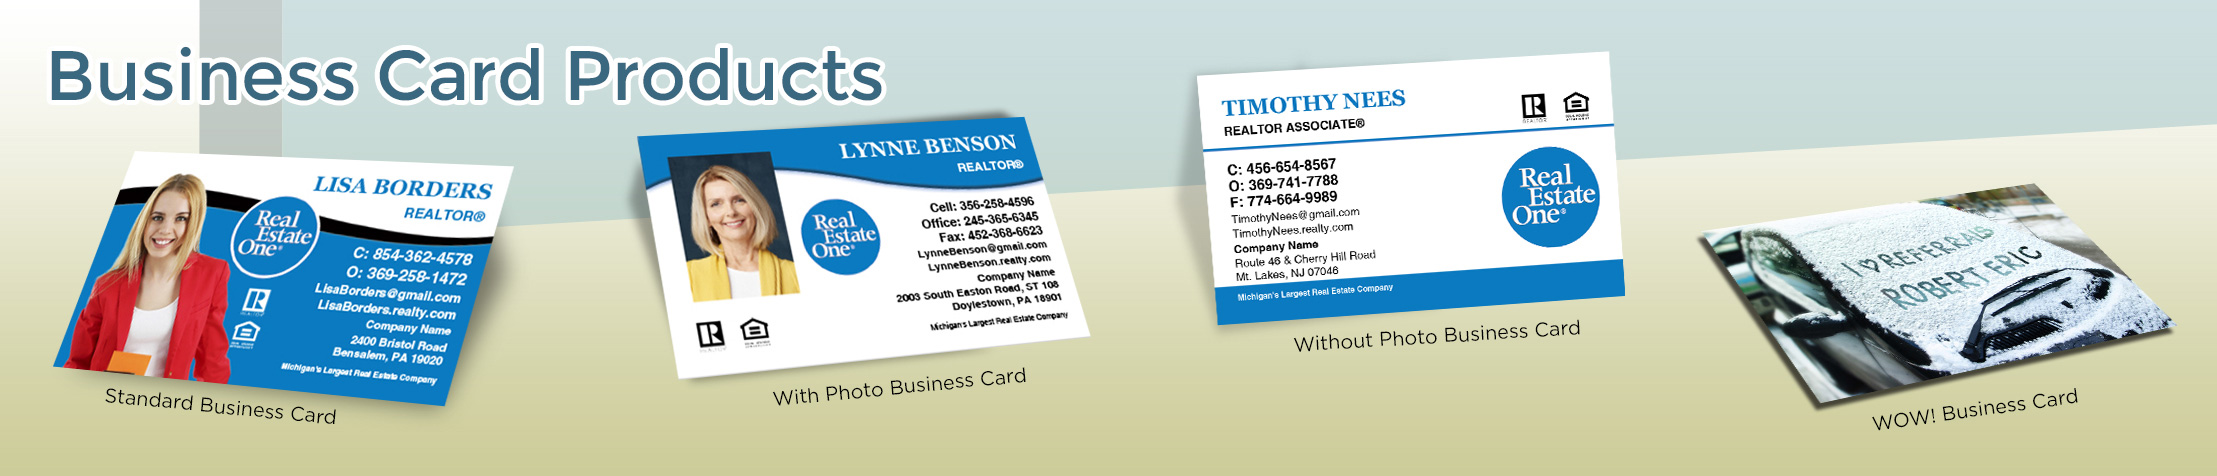 Real Estate One Real Estate Business Card Products - Real Estate One  - Unique, Custom Business Cards Printed on Quality Stock with Creative Designs for Realtors | BestPrintBuy.com